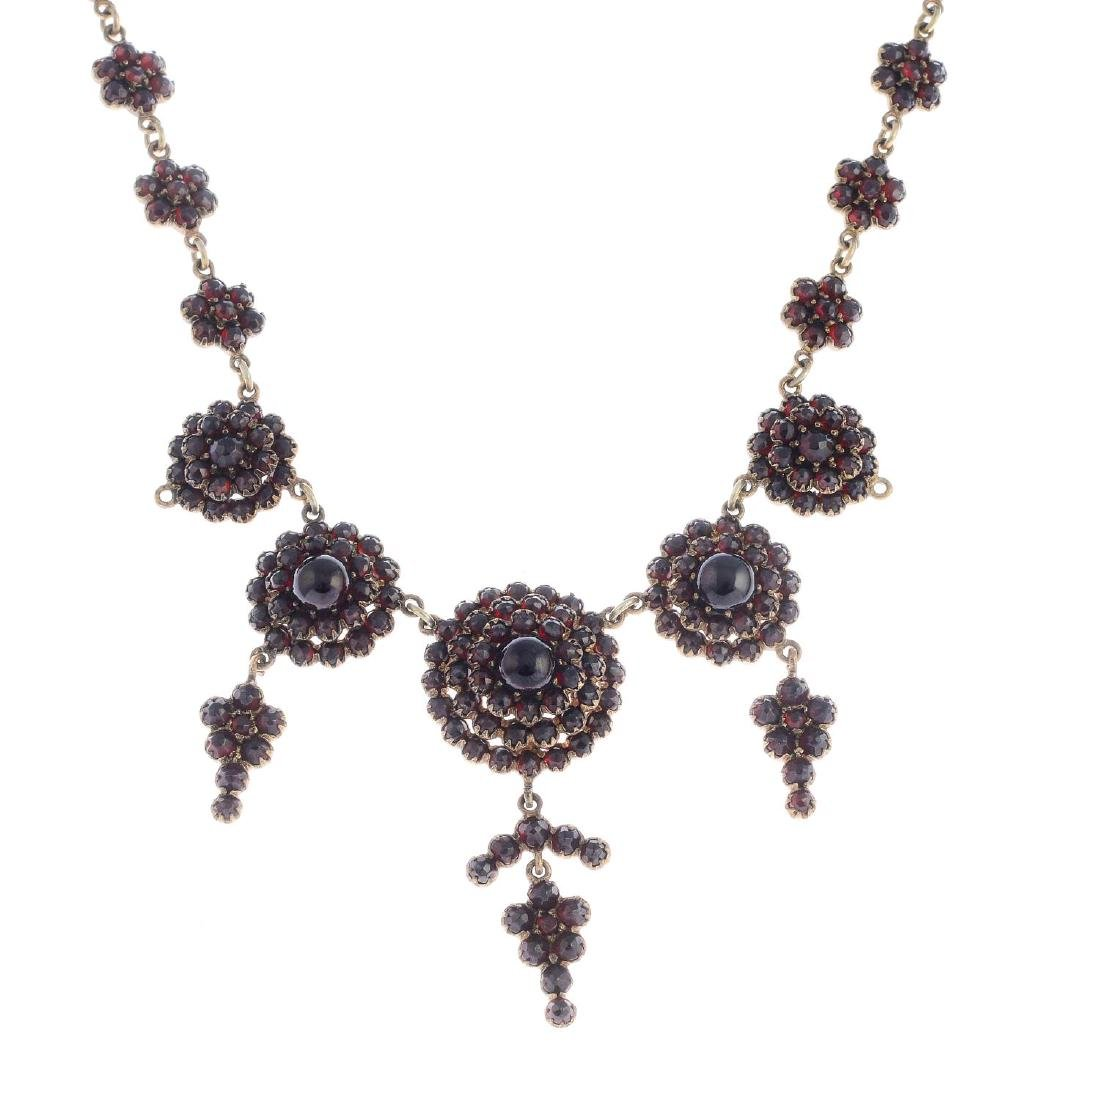 A late Victorian garnet necklace. Designed as a series